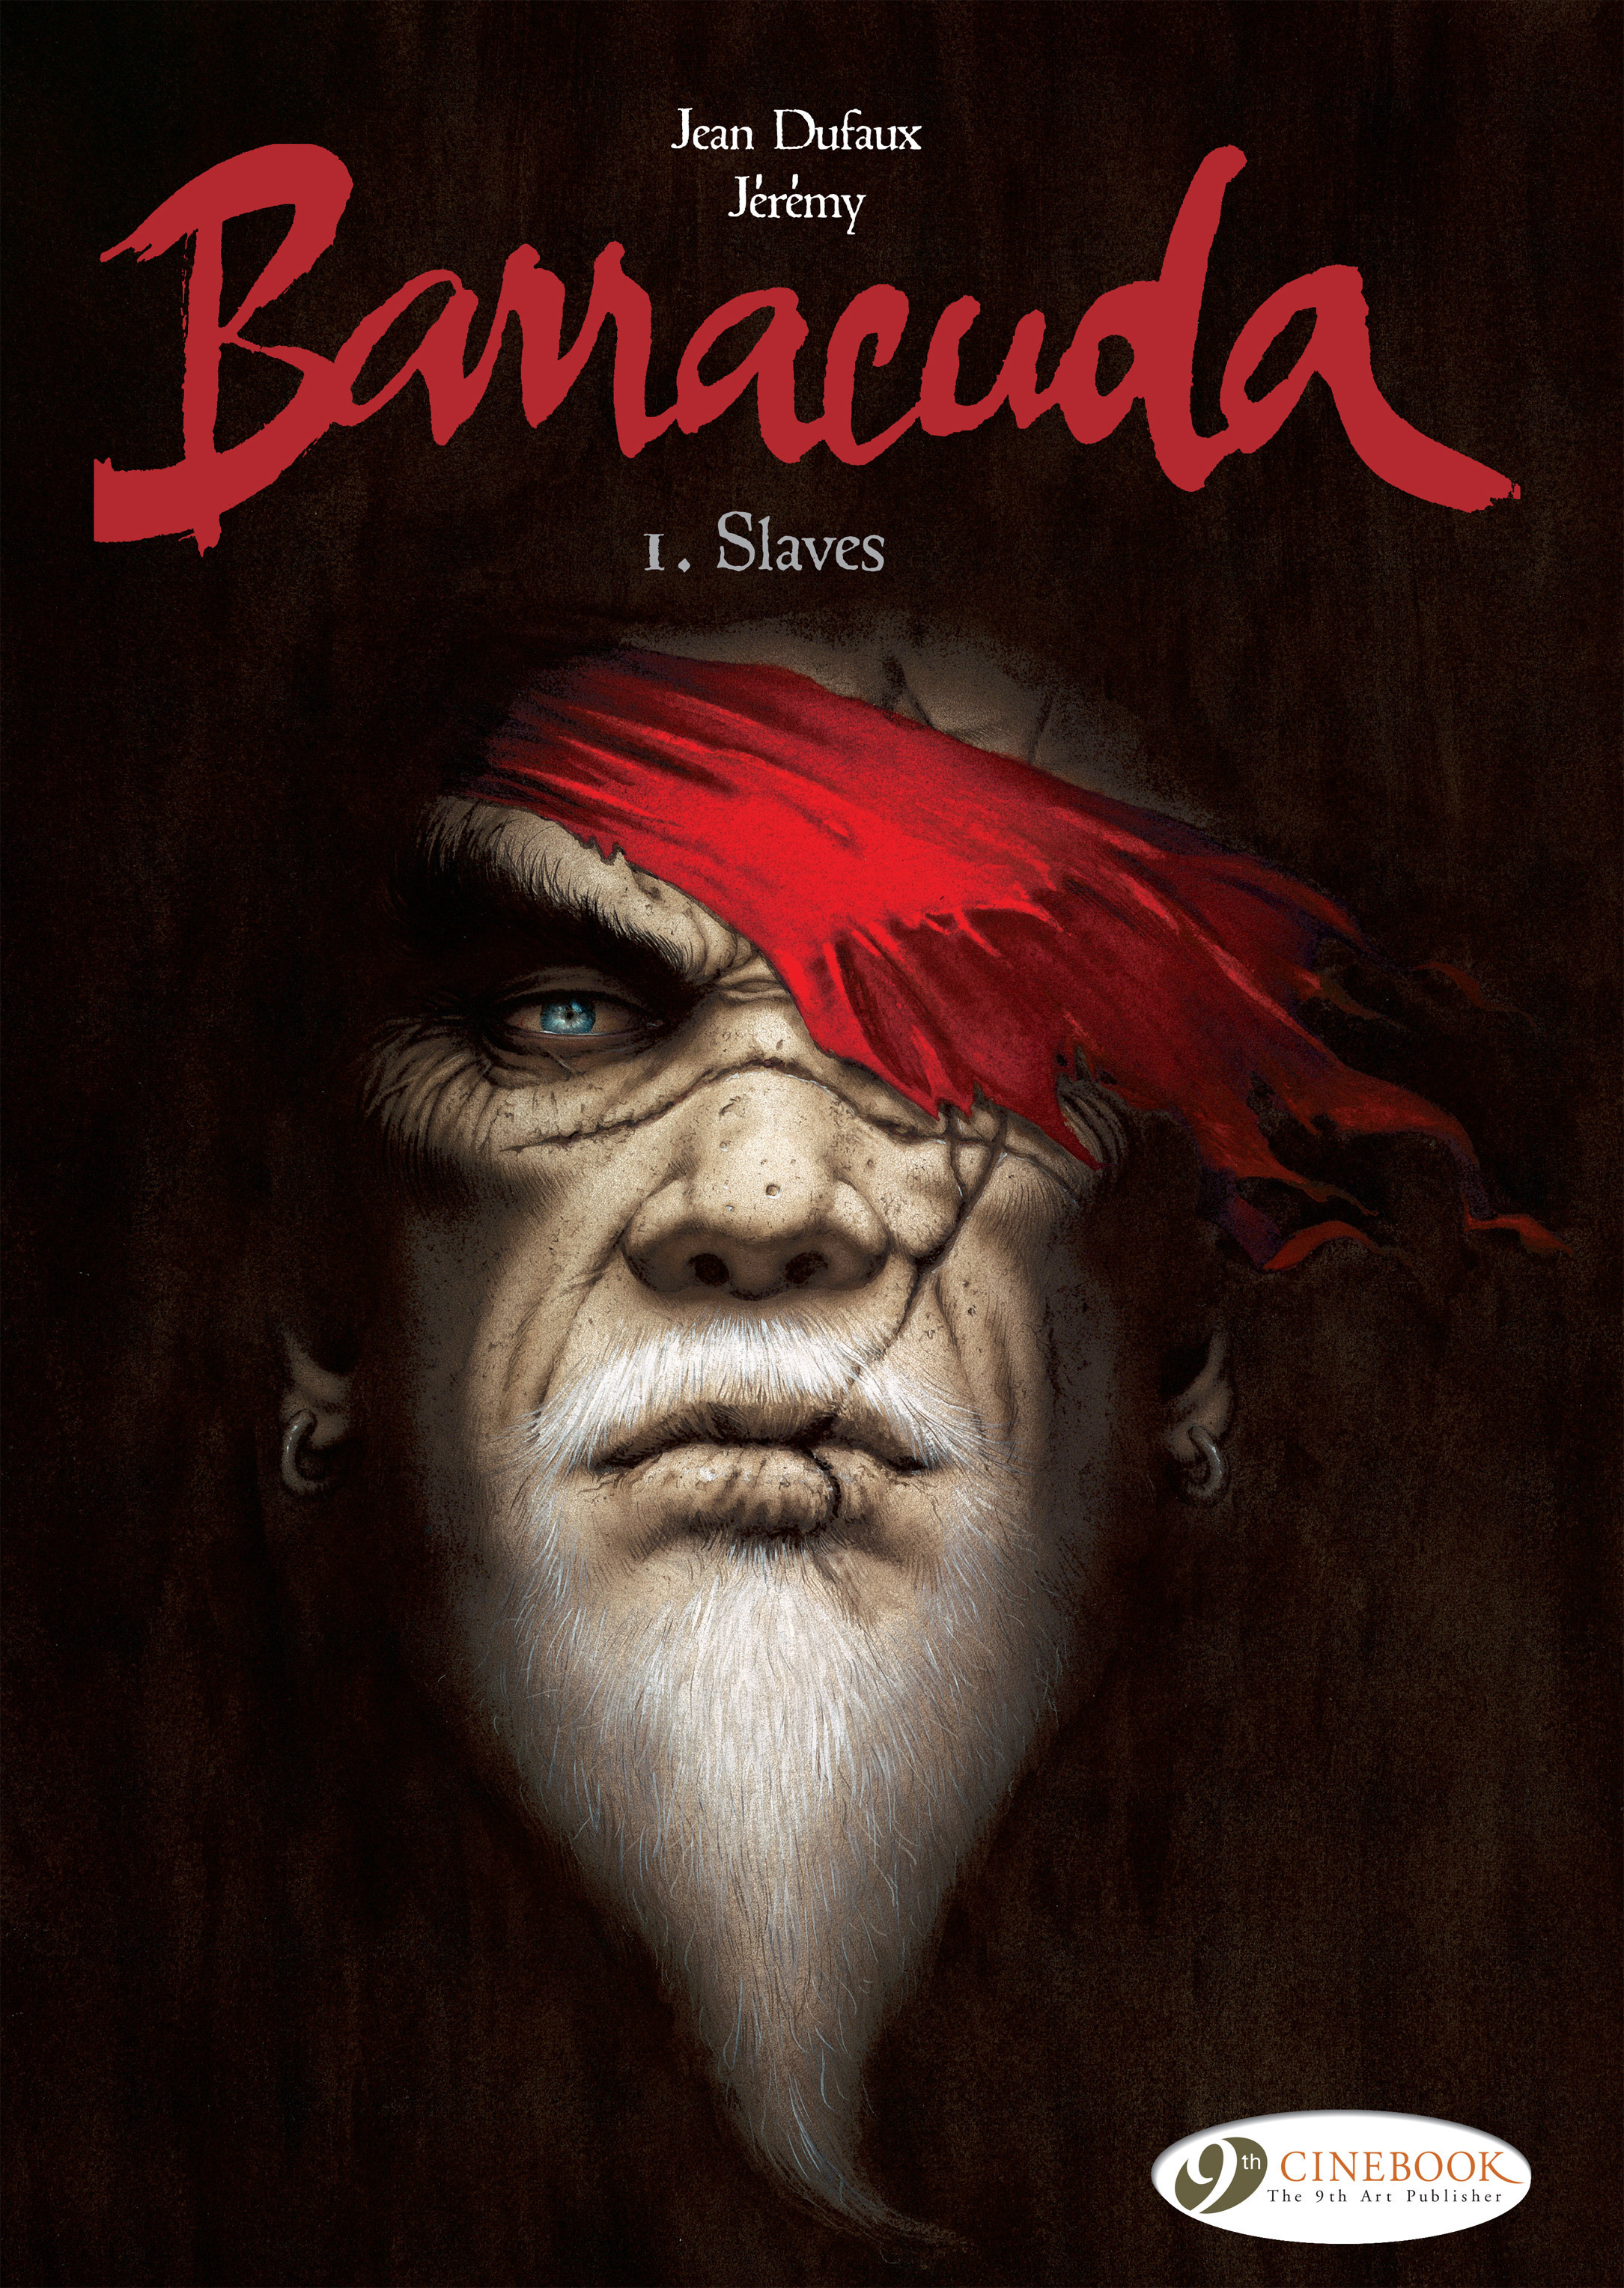 Read online Barracuda comic -  Issue #1 - 1